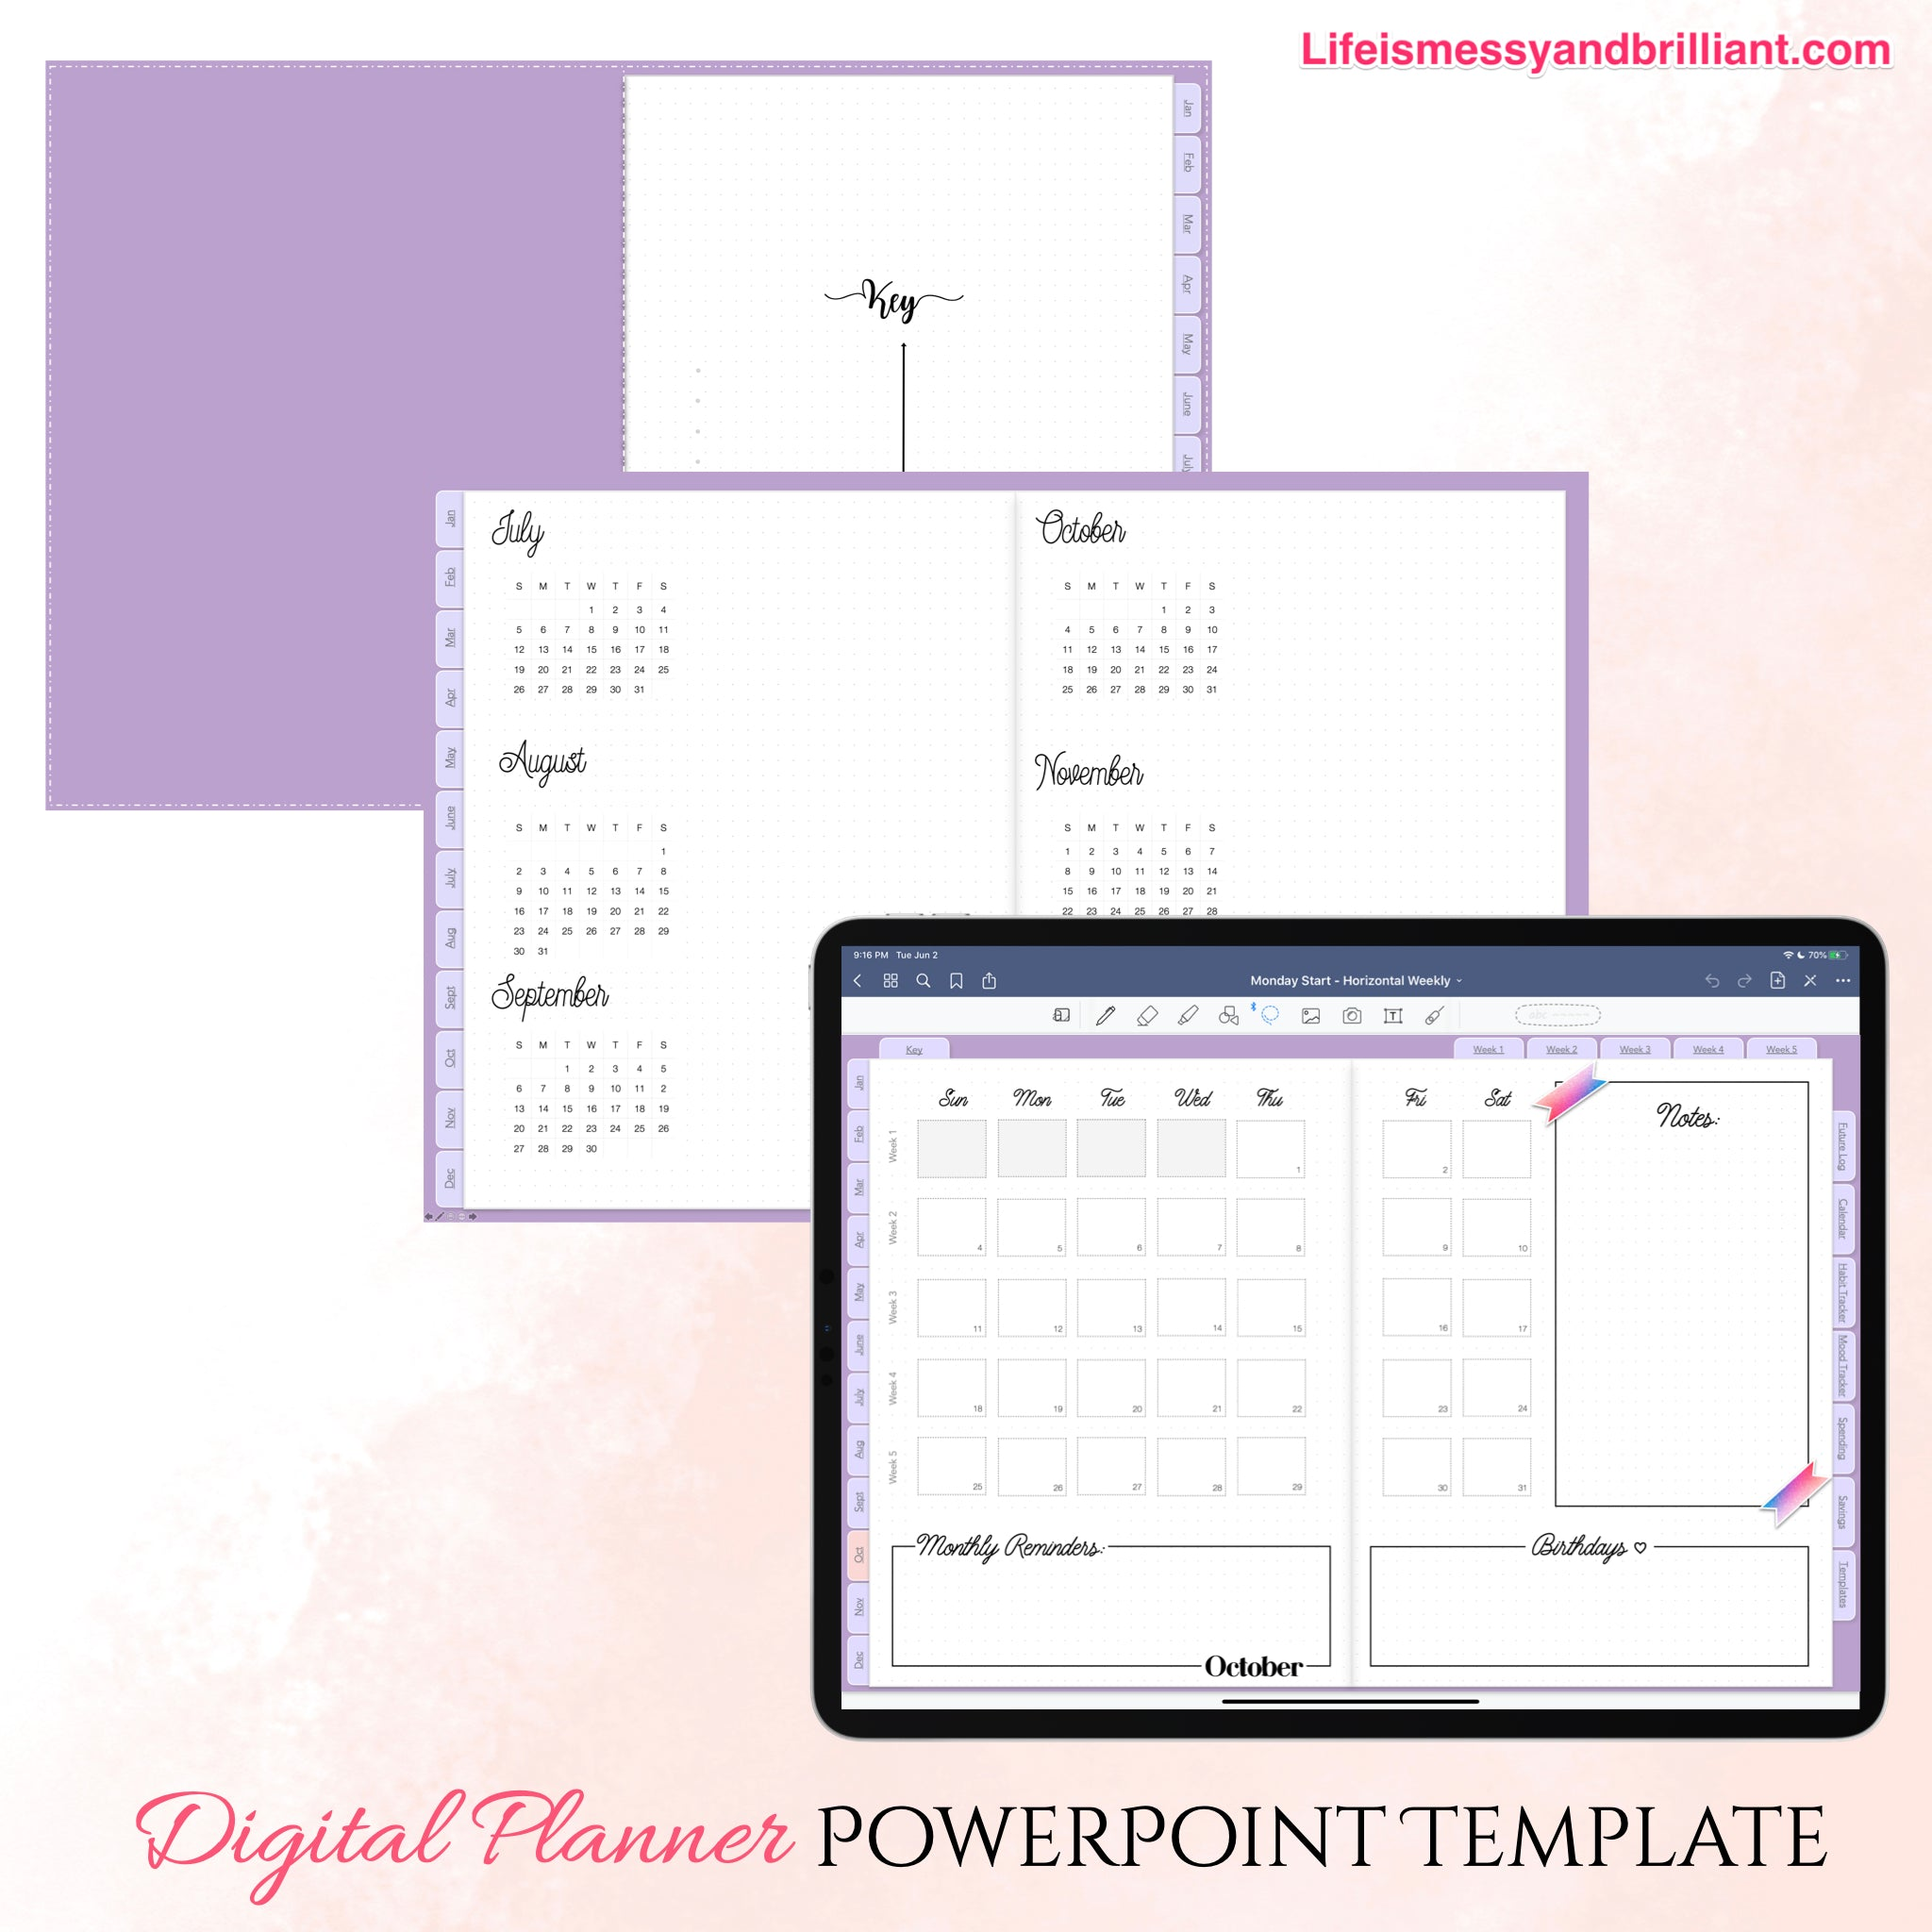 Editable 2021 PowerPoint Digital Planner for Windows, Android, and Apple